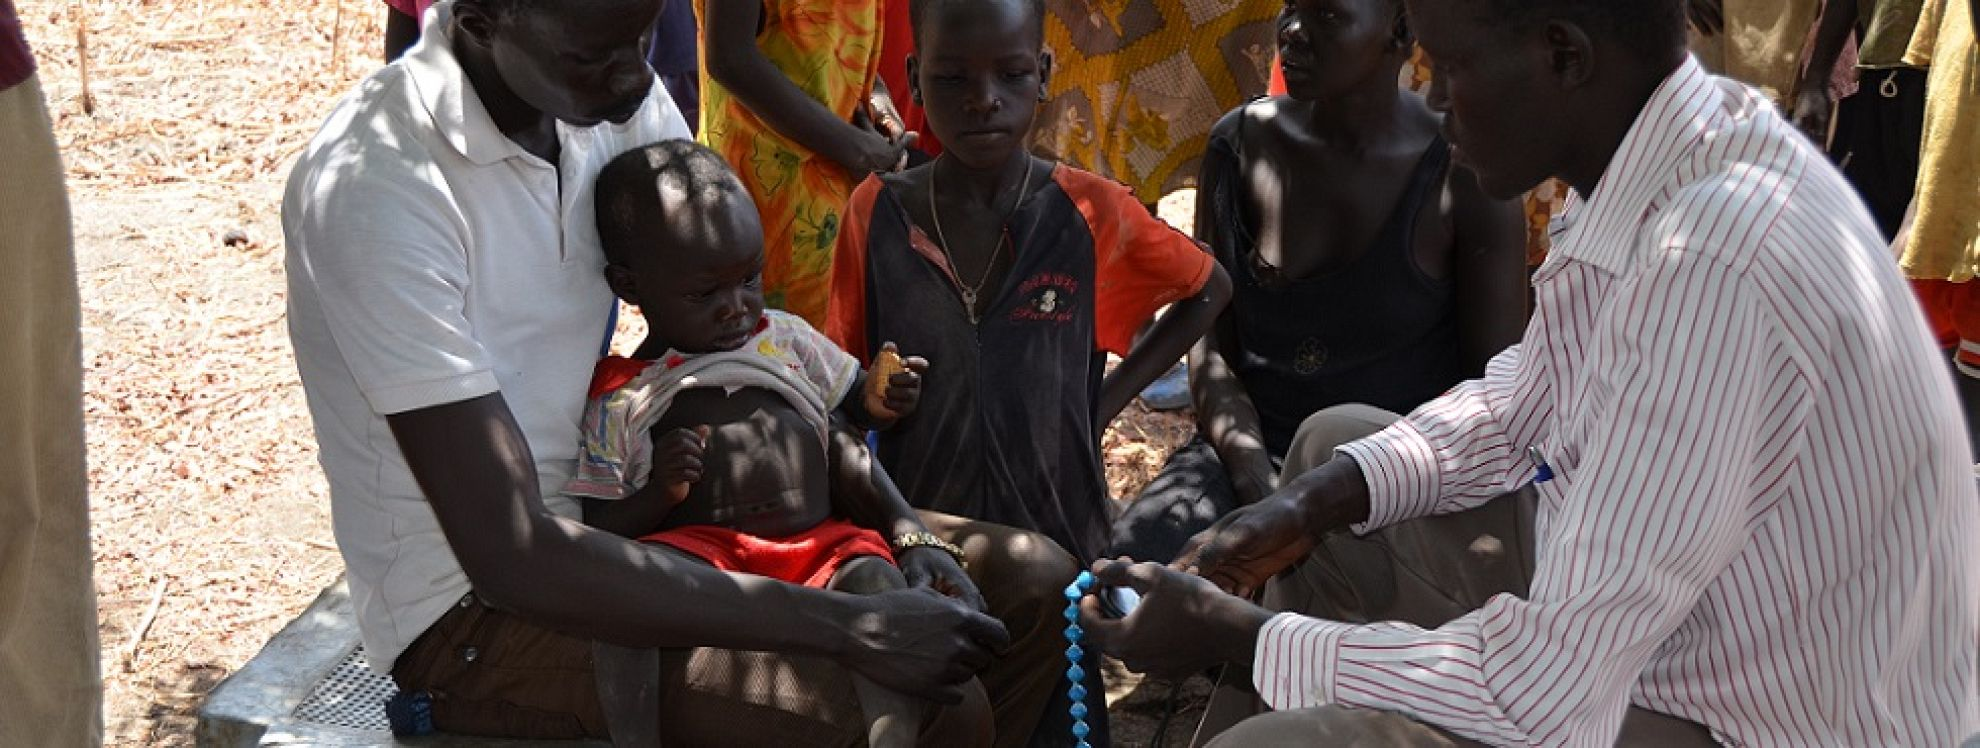 Latest News Sharing progress and lessons learnt from the pneumonia diagnostics project in south sudan short